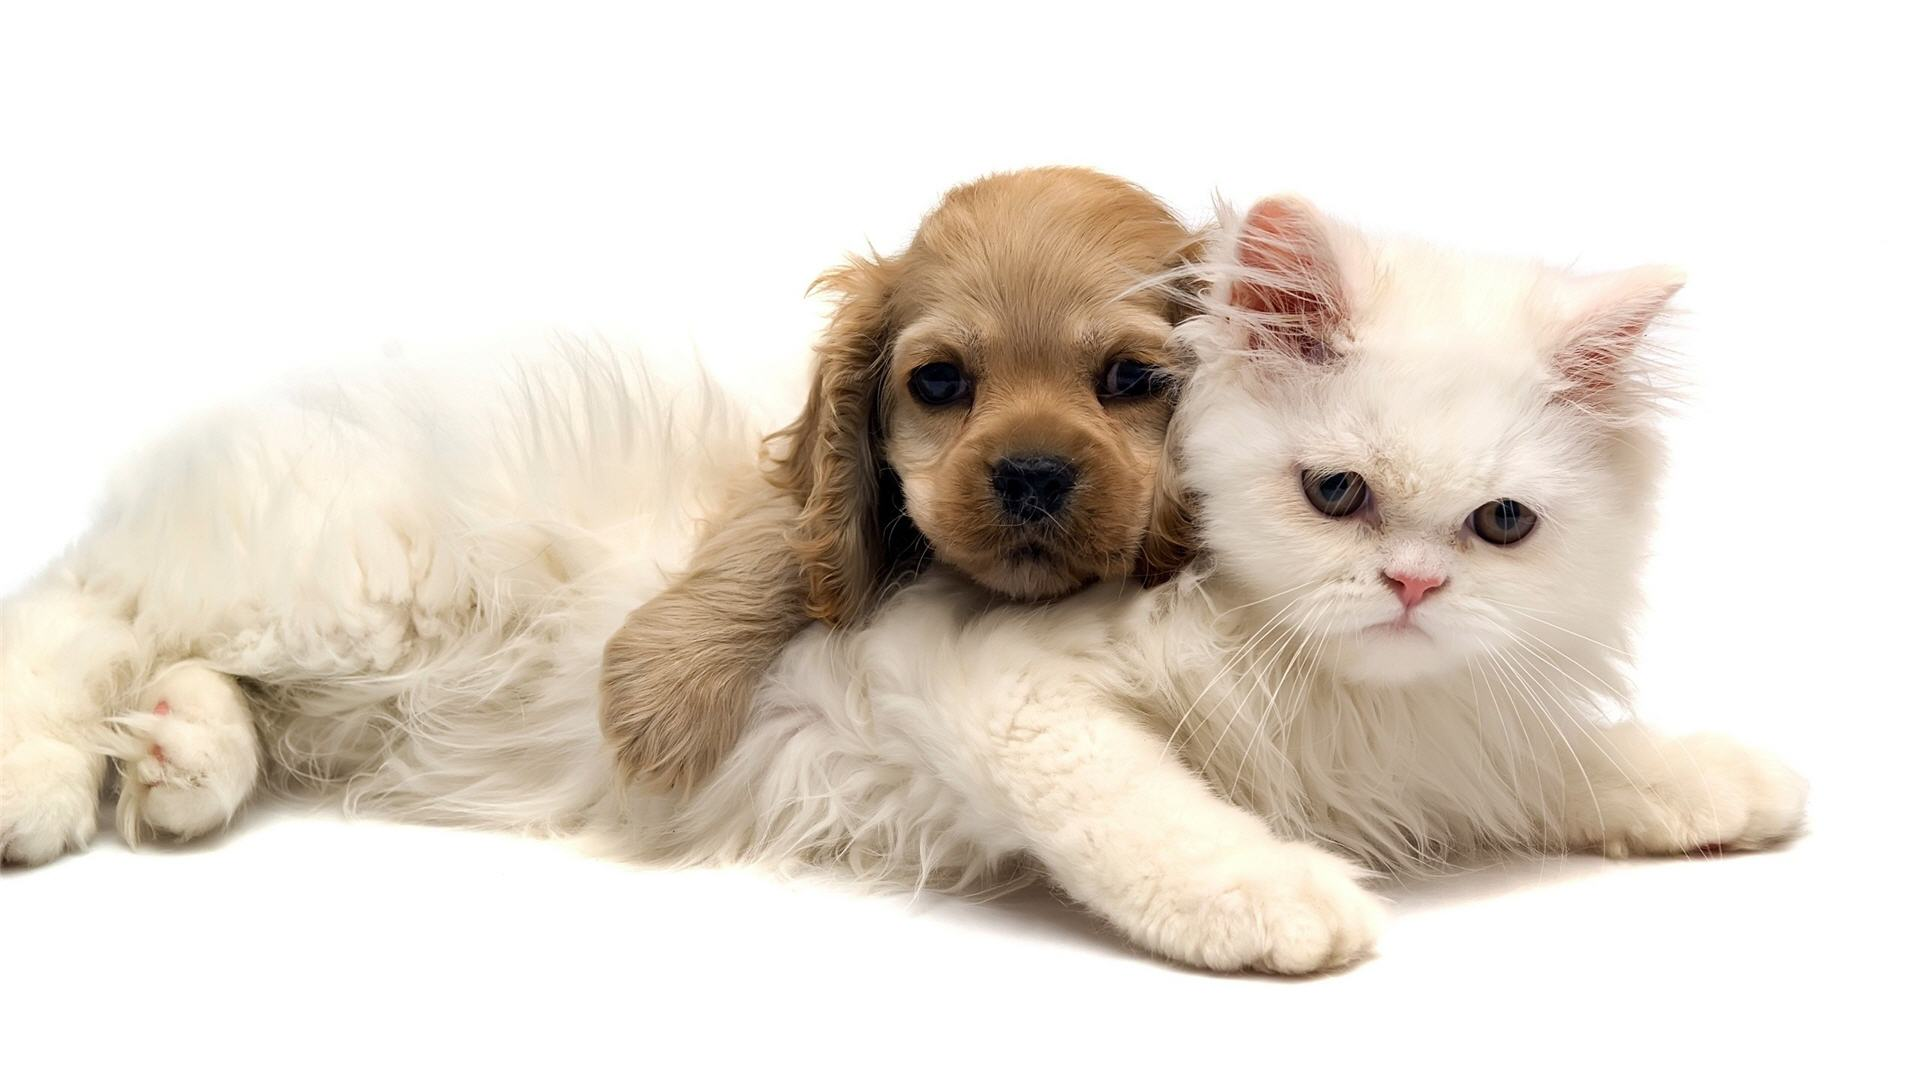 pics-of-cute-cats-and-dogs-6